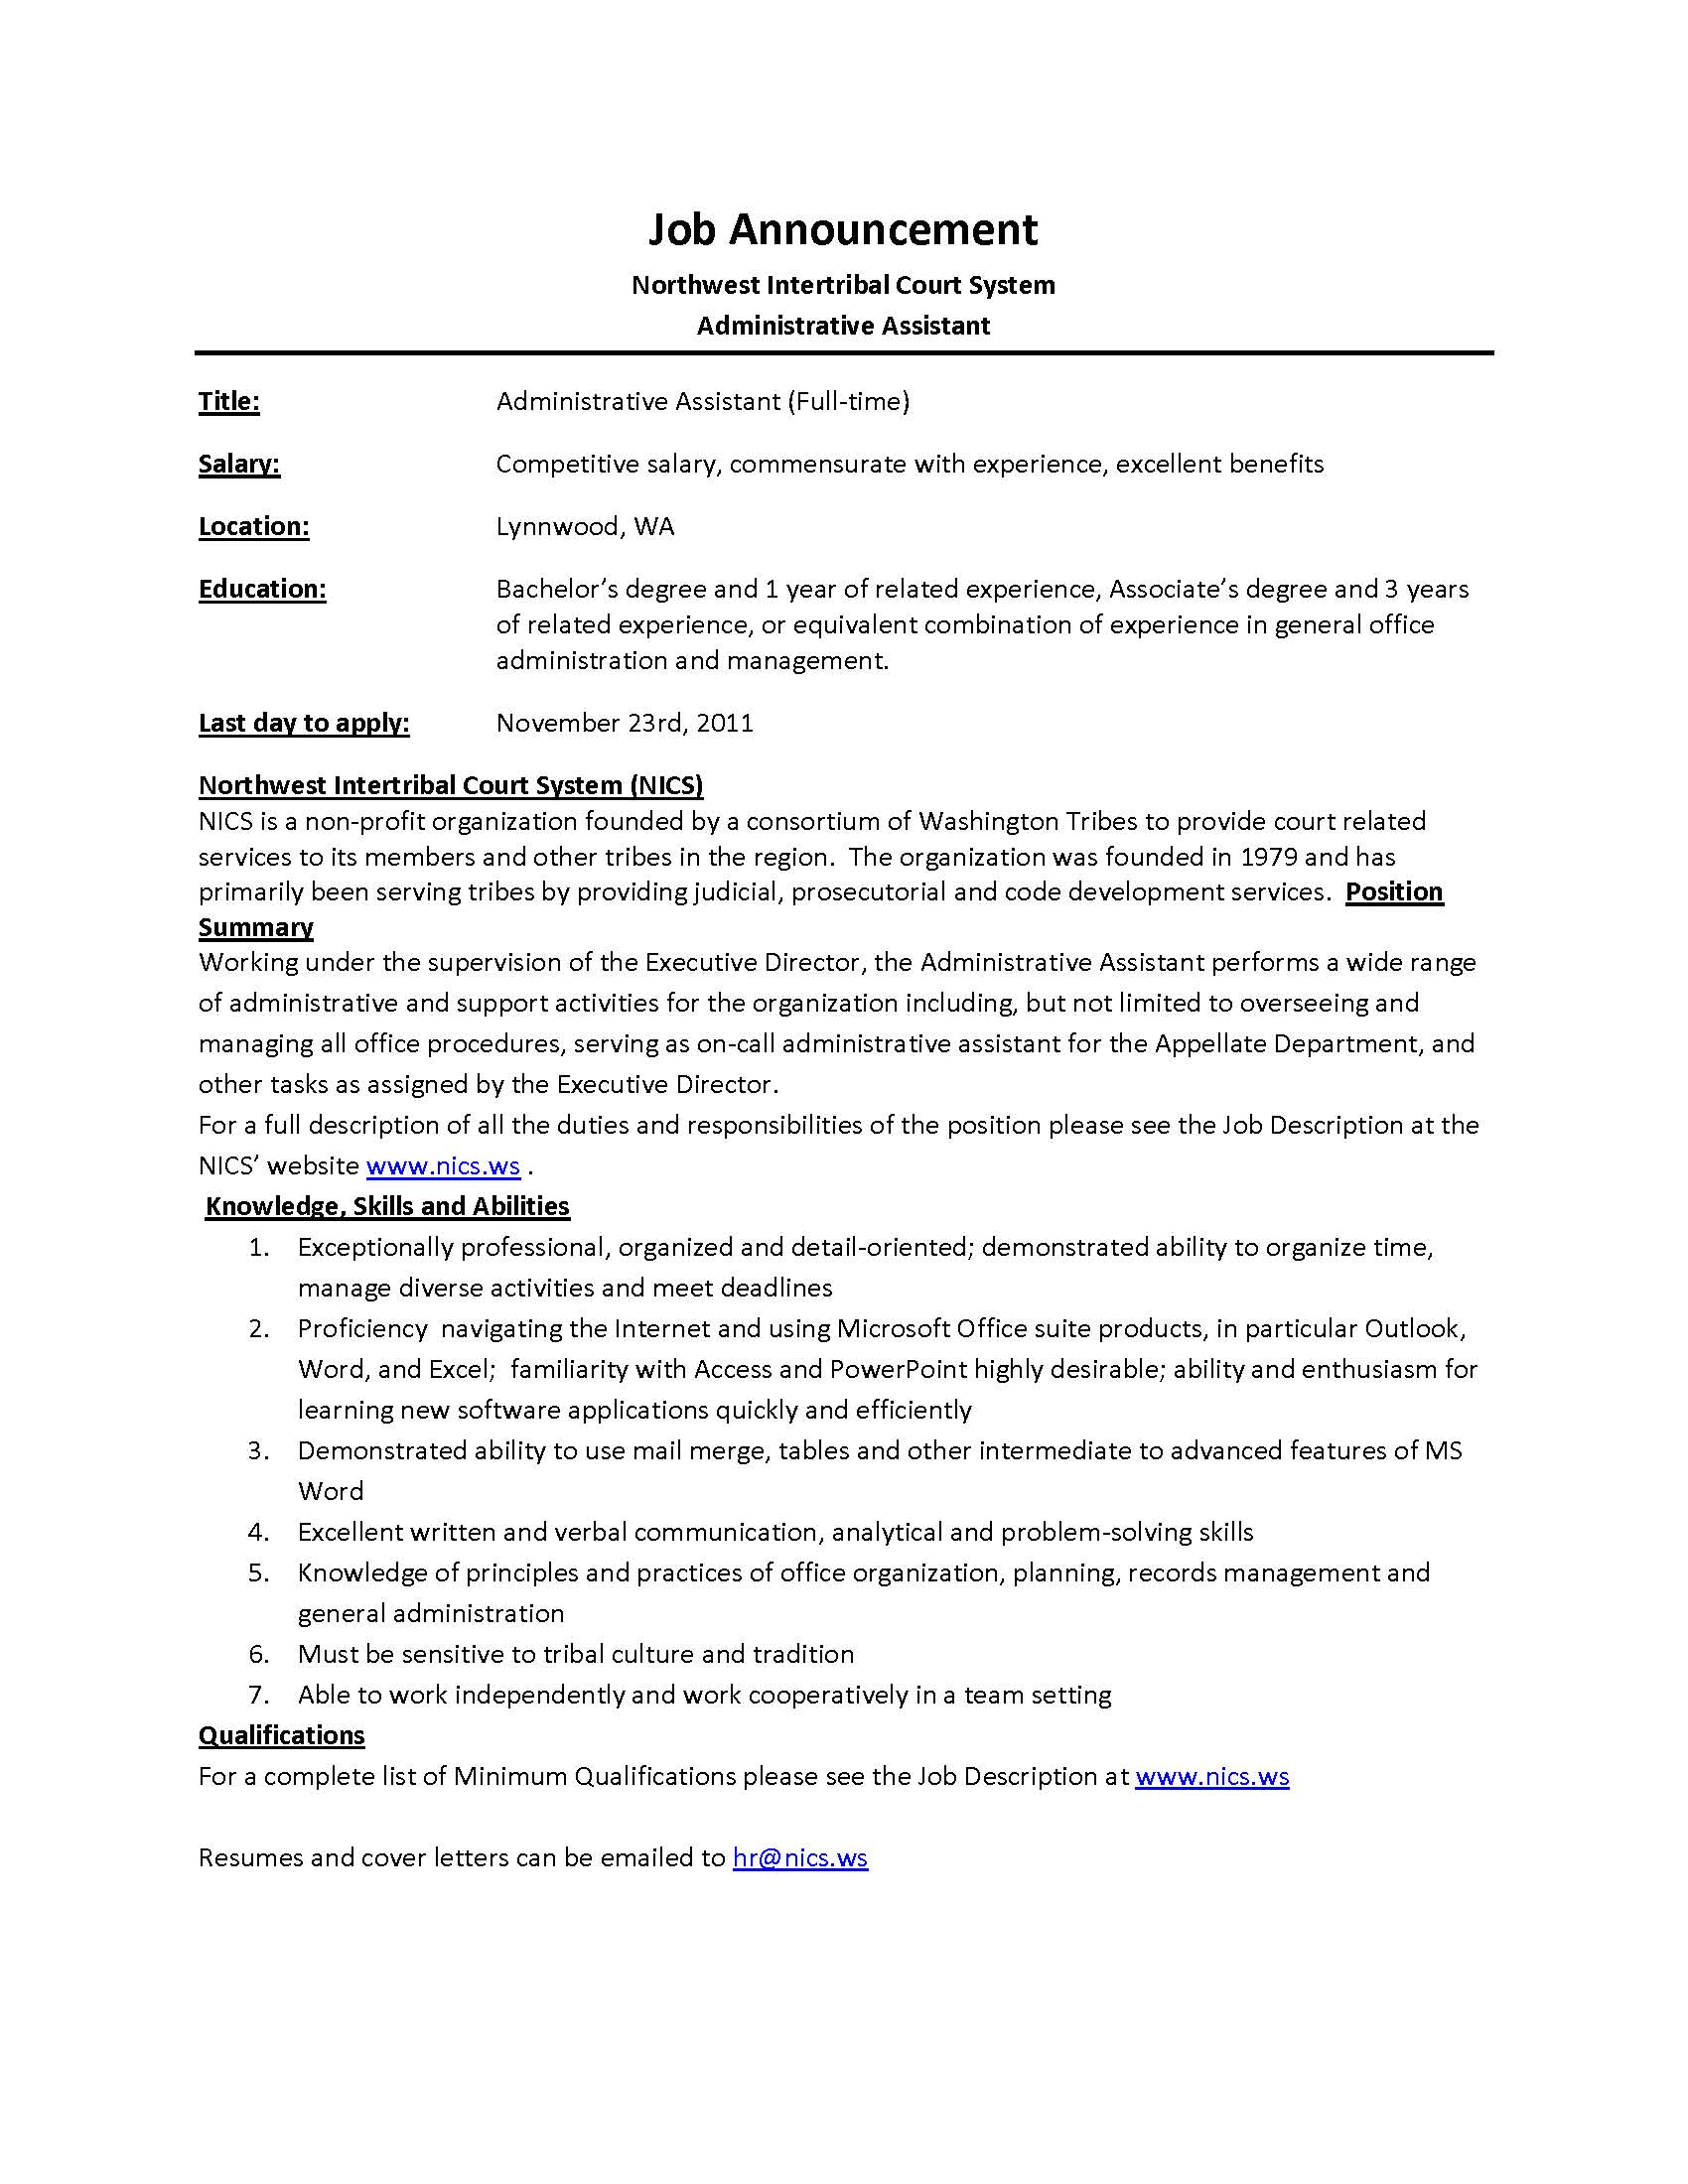 Amazing Job Announcement NICS Admin Assistant Administrative Assistant Sample Job  Description Can Assist Regard To Administrative Assistant Responsibilities